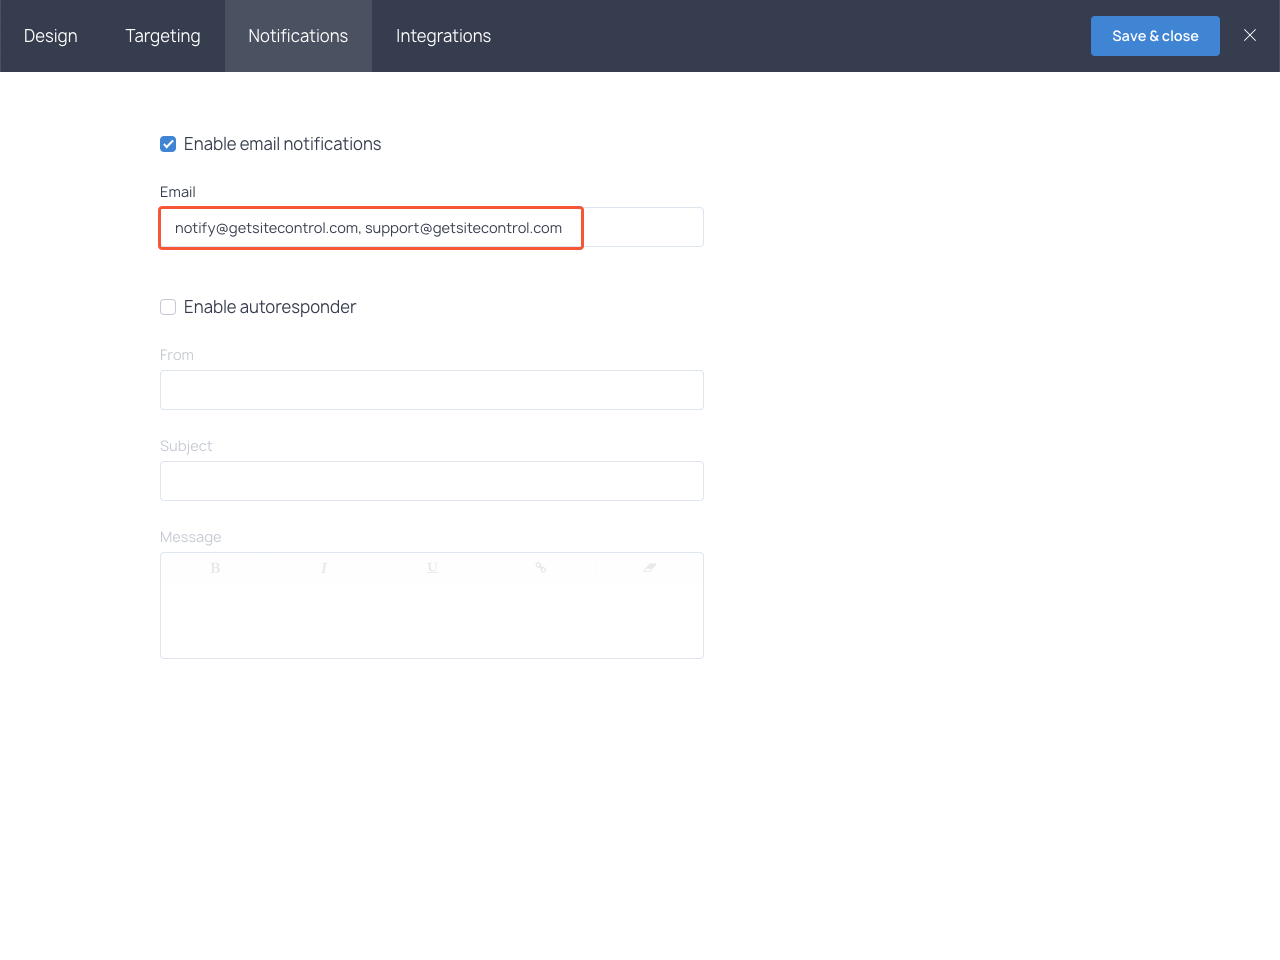 Adding two email addresses for notifications